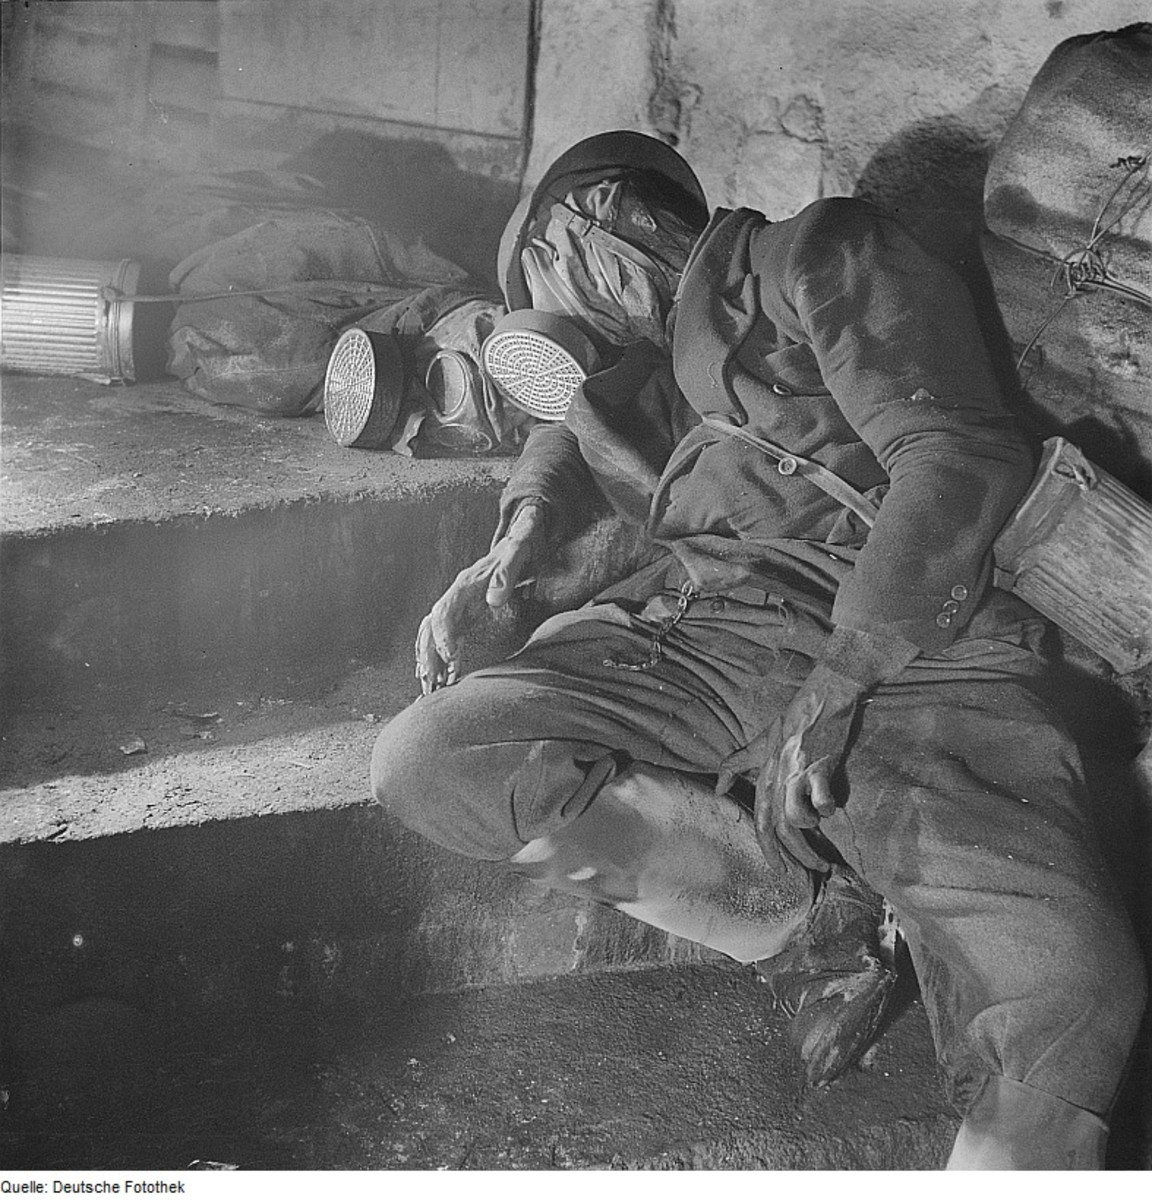 The gas masks didn't help these two soldiers because all of the oxygen was sucked out of their refuge.